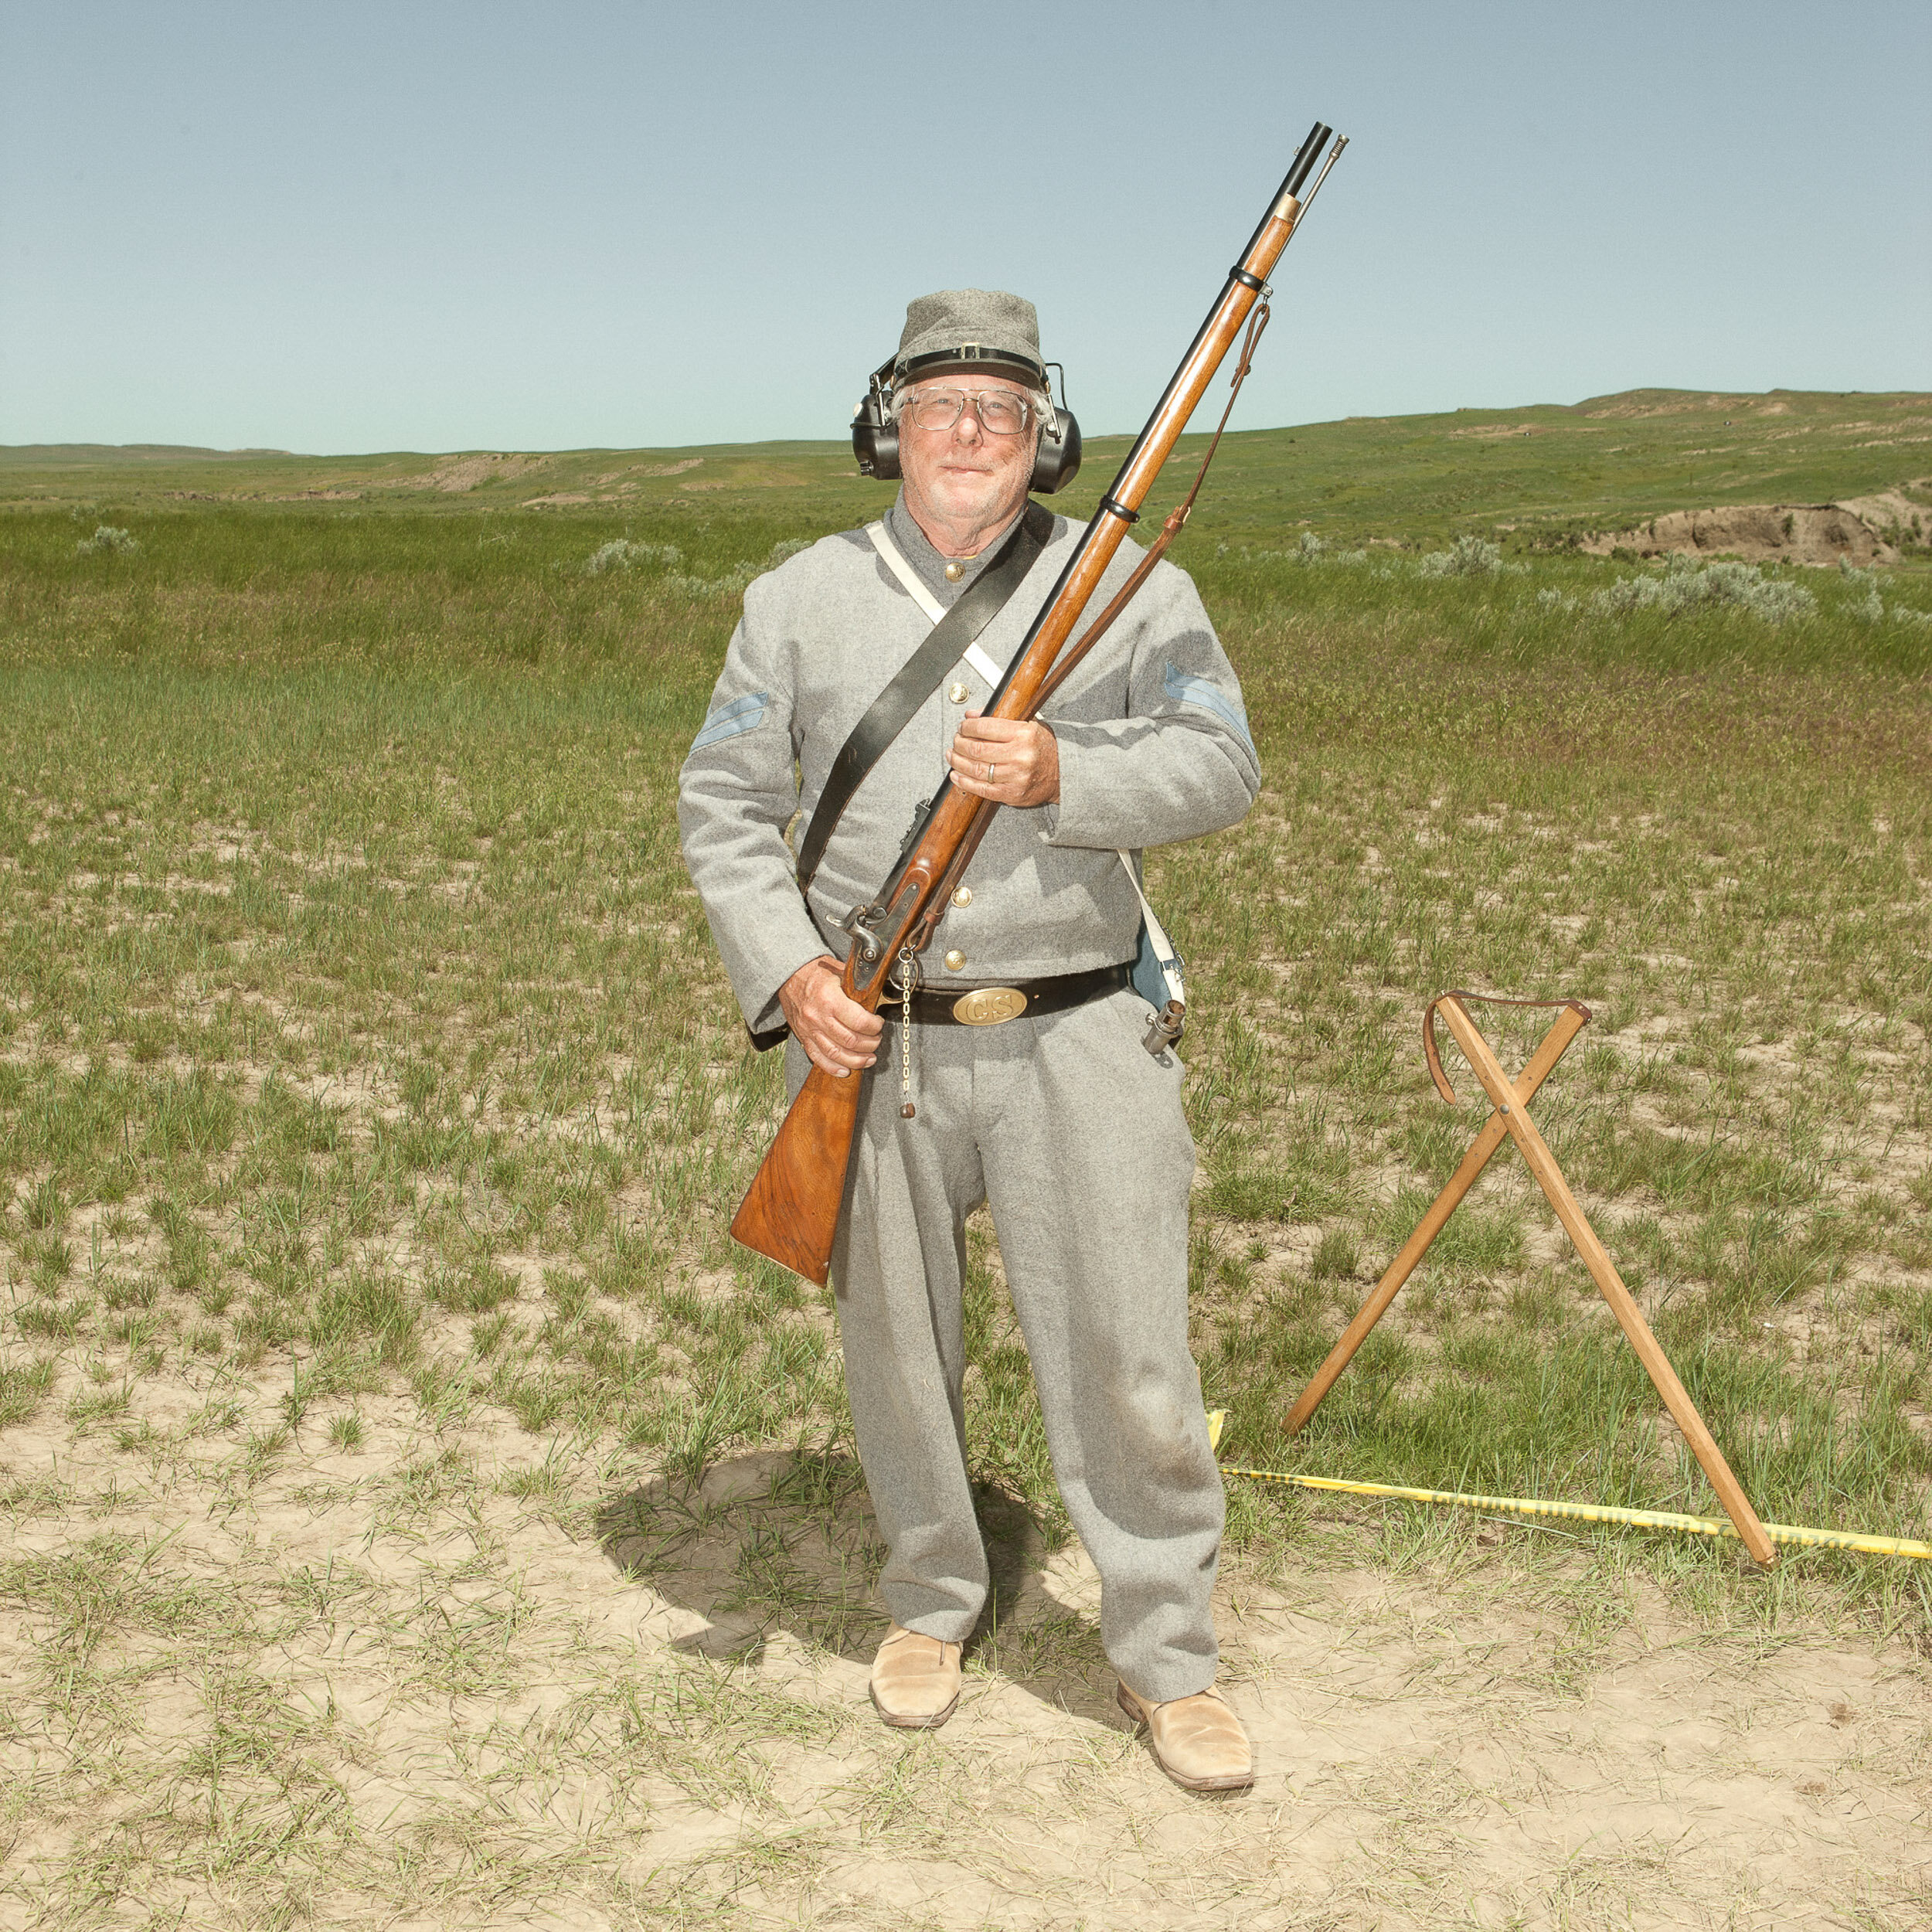 Rifle contest in Montana